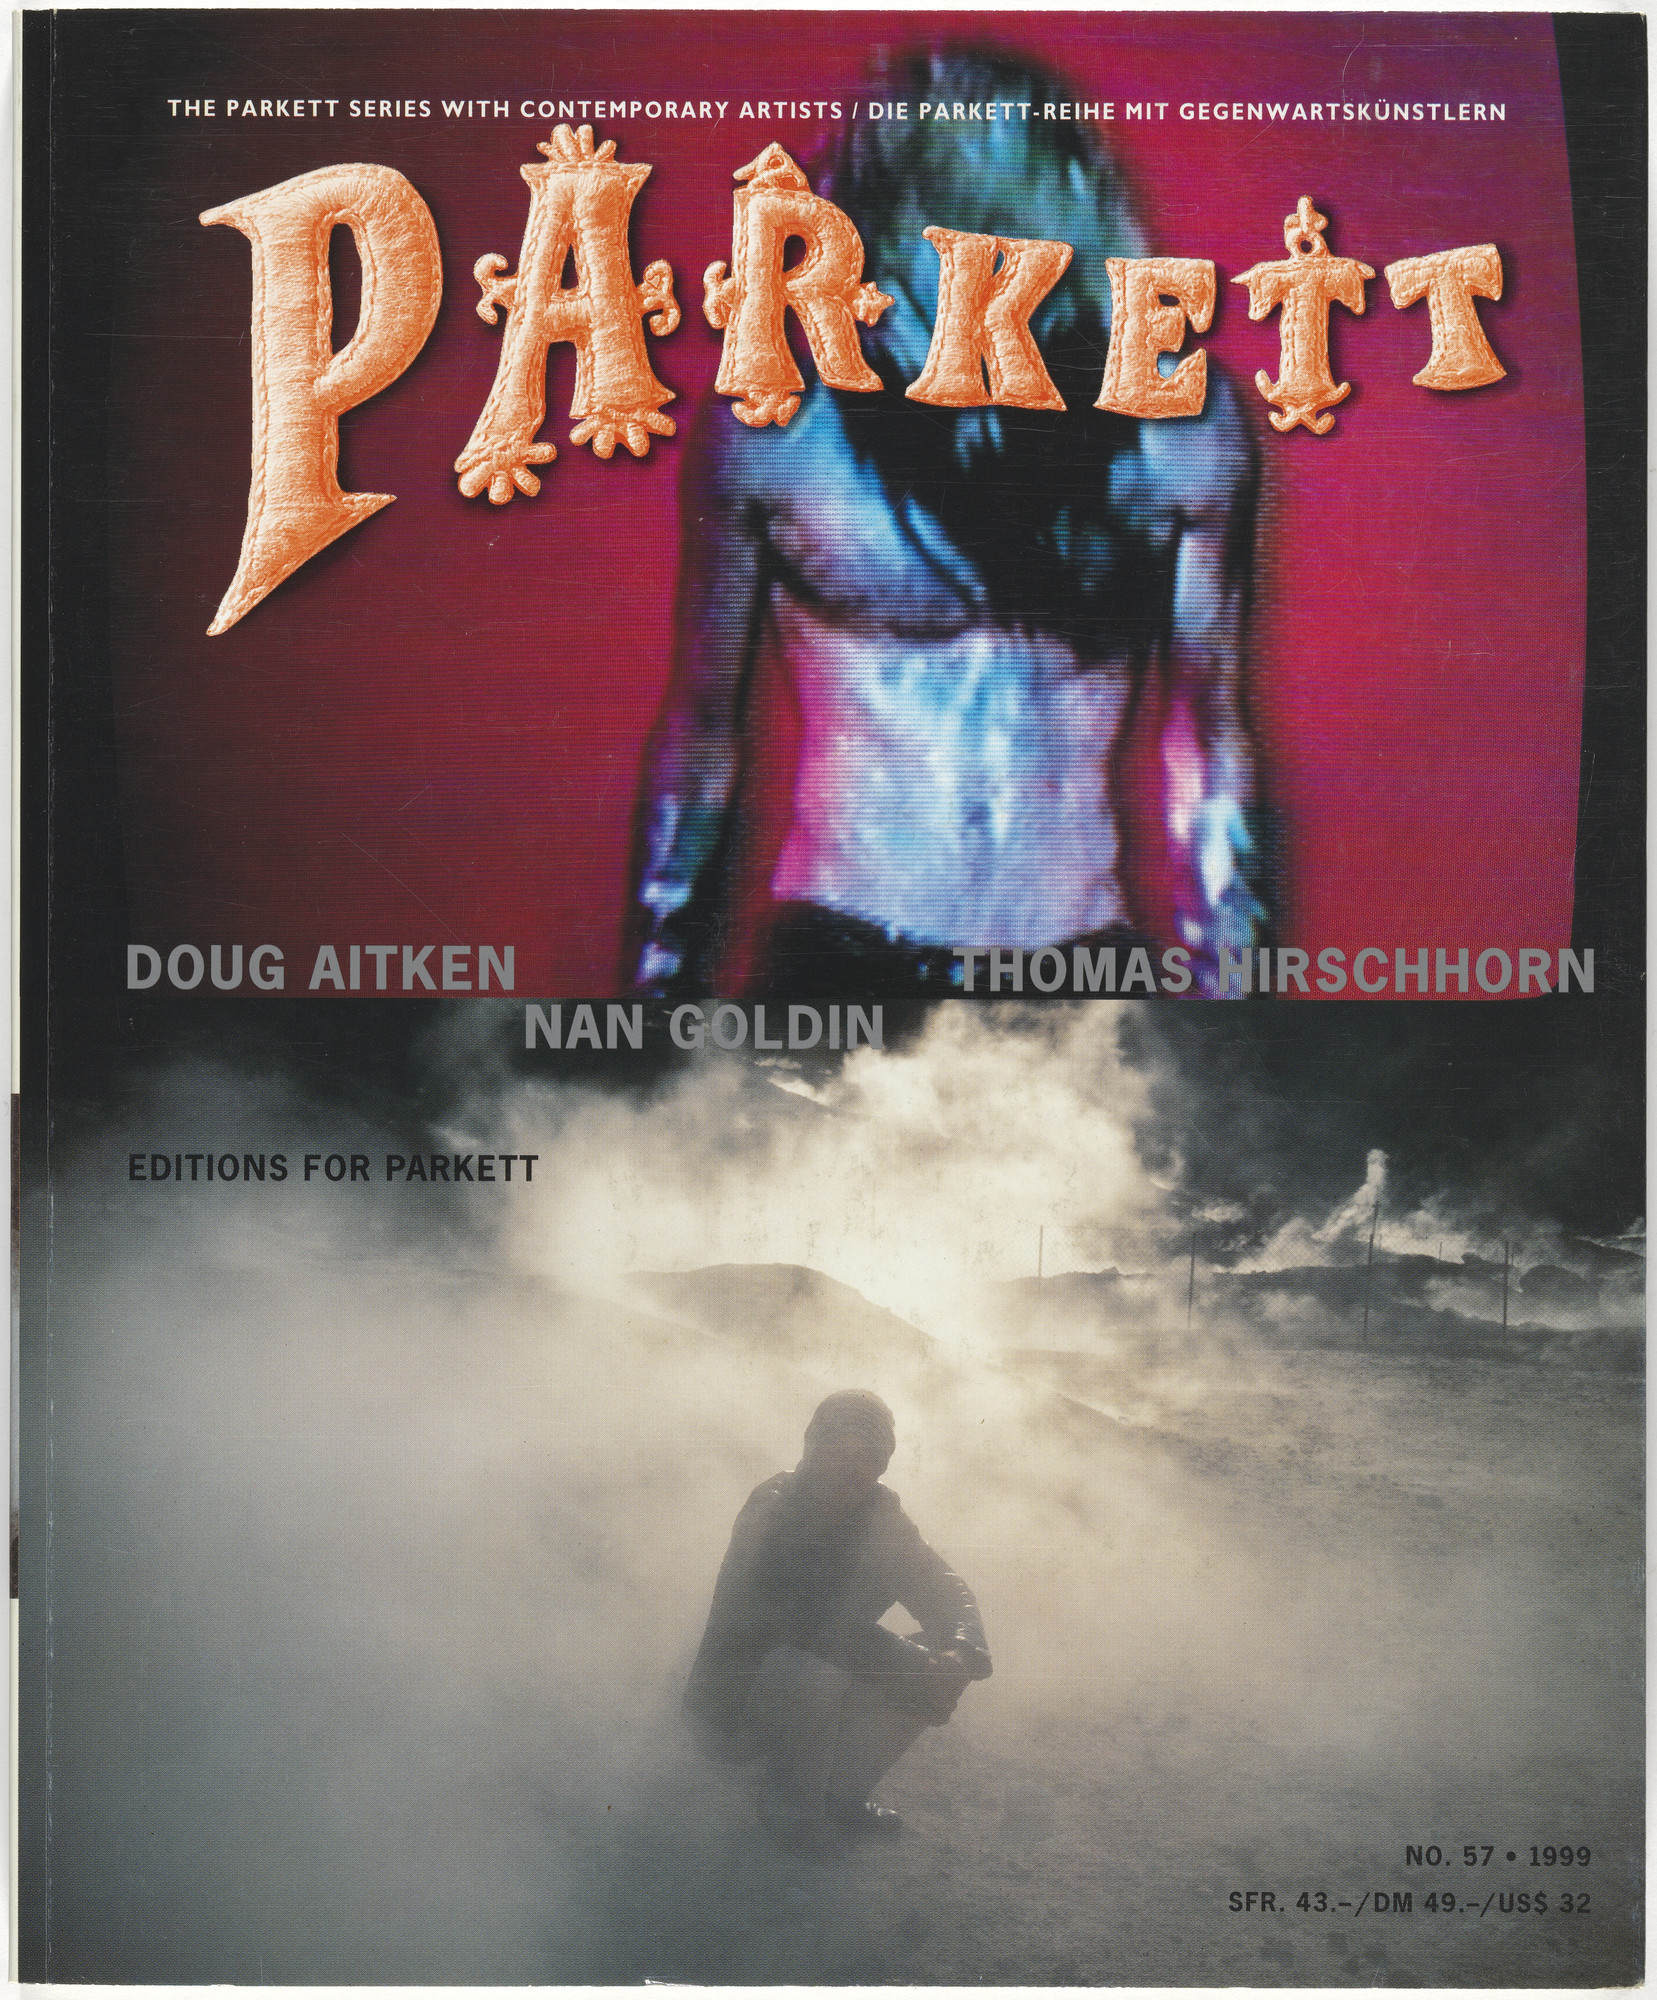 Various Artists, Doug Aitken, Nan Goldin, Thomas Hirschhorn, Louise Bourgeois. Parkett no. 57. 1999